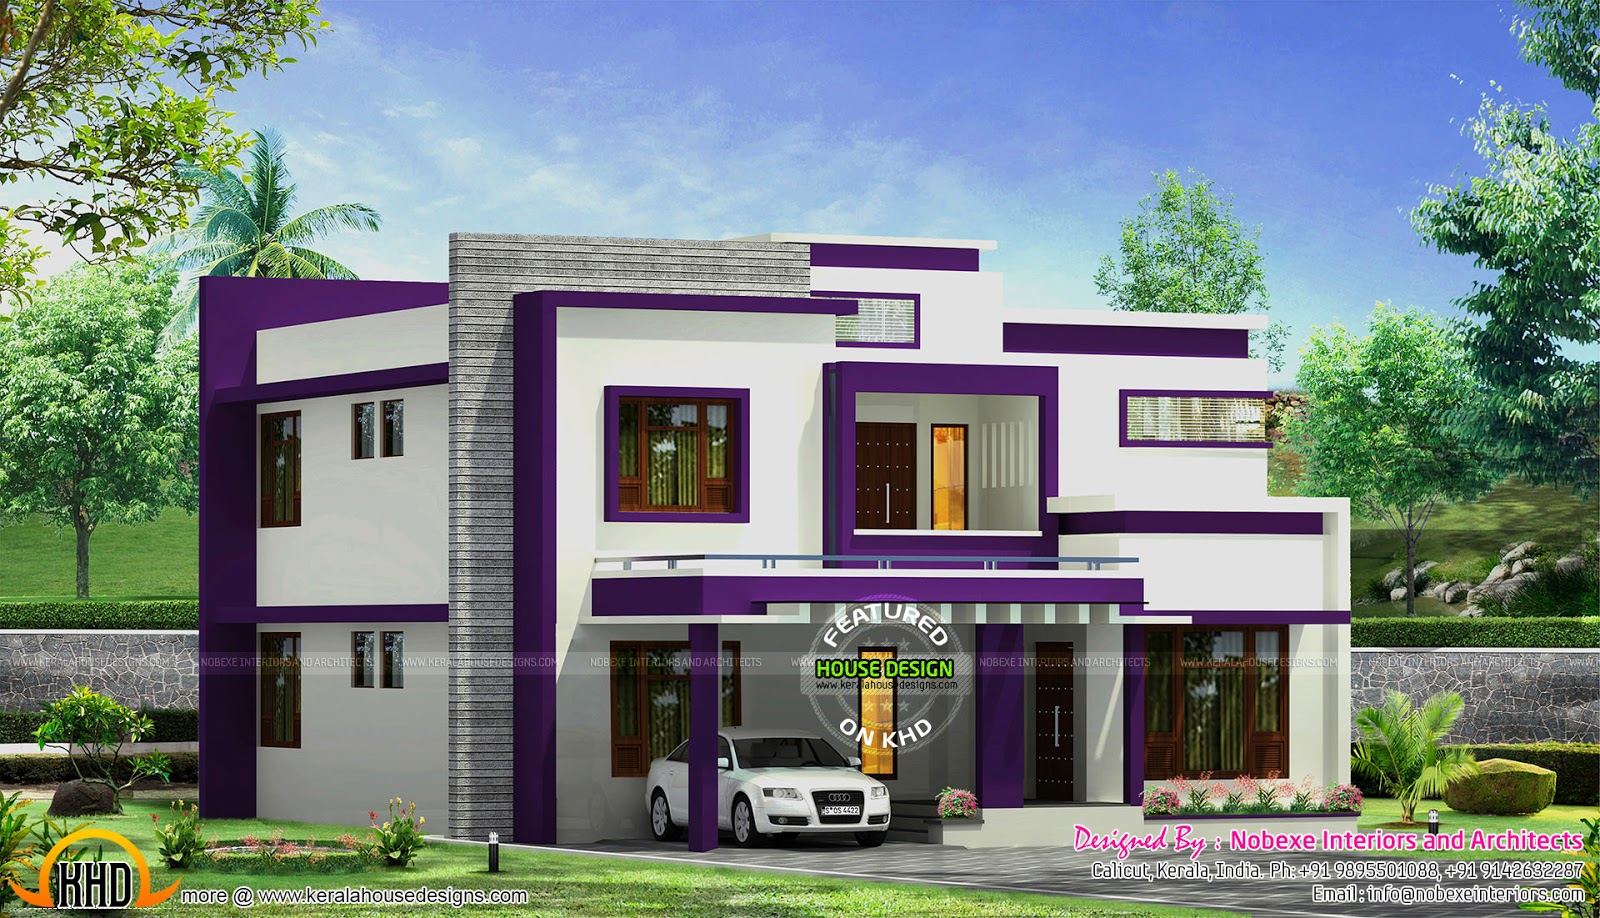 Contemporary home design by nobexe interiors kerala home for Contemporary house designs